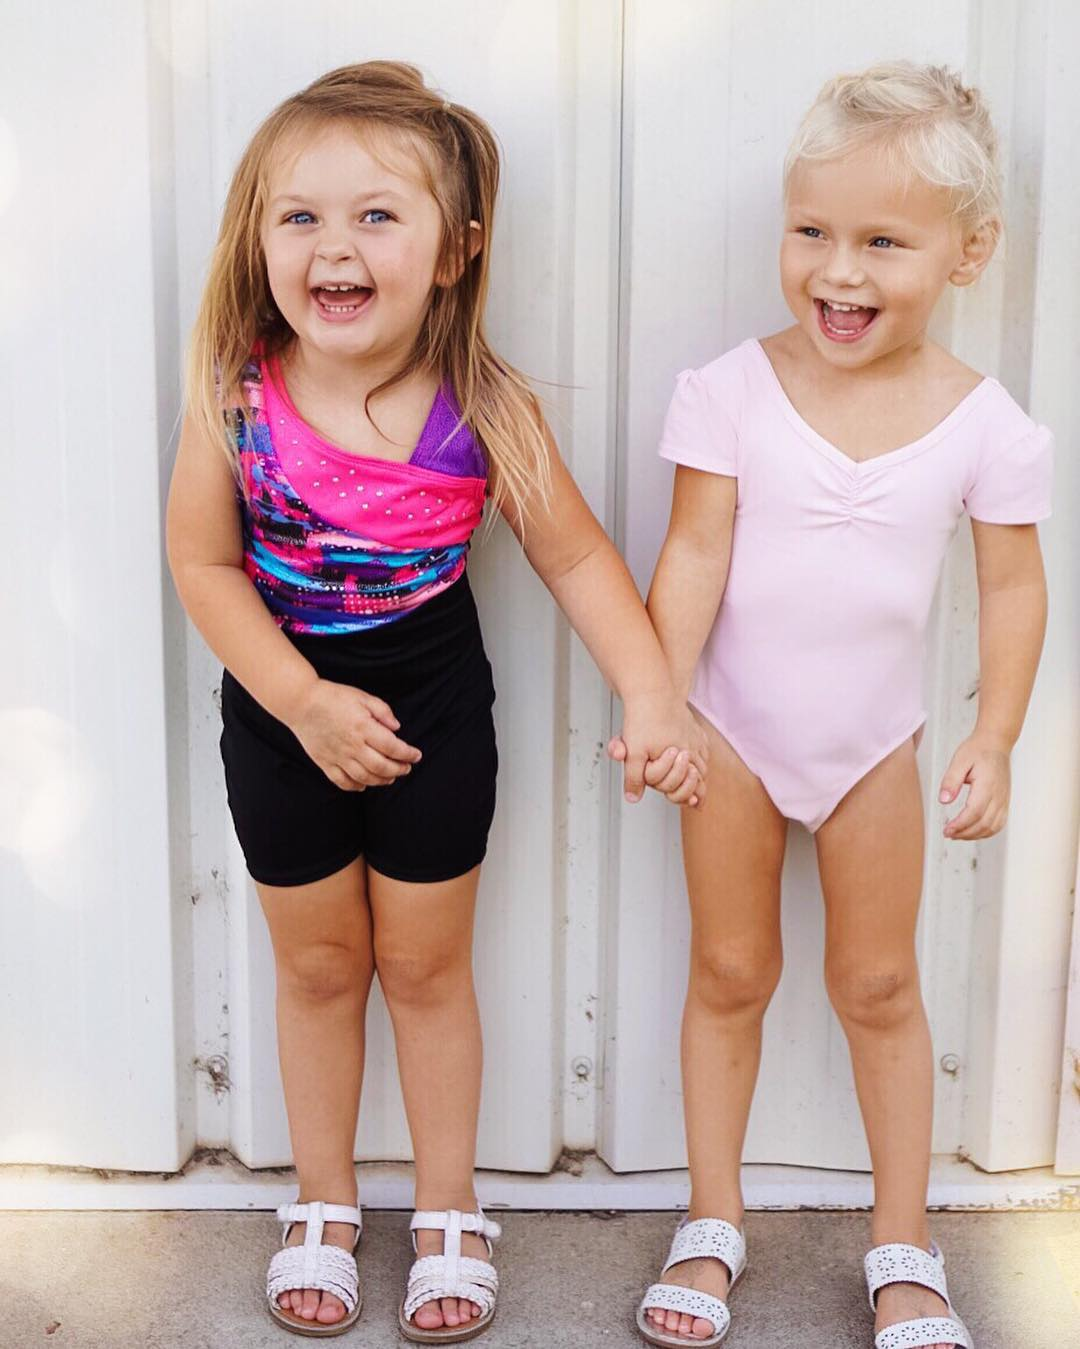 Who run the world!?! GIRLS! Gymnastics with her best buddy!! I love the sweet relationship these girlies have and hope B.Love always knows the value of a best friend! #lifewithblove